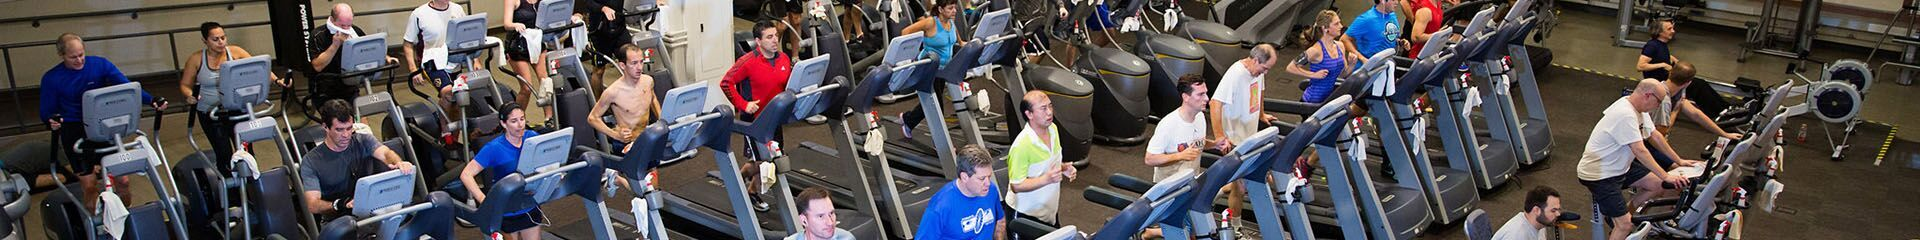 Workout together with Childress Klein amenities